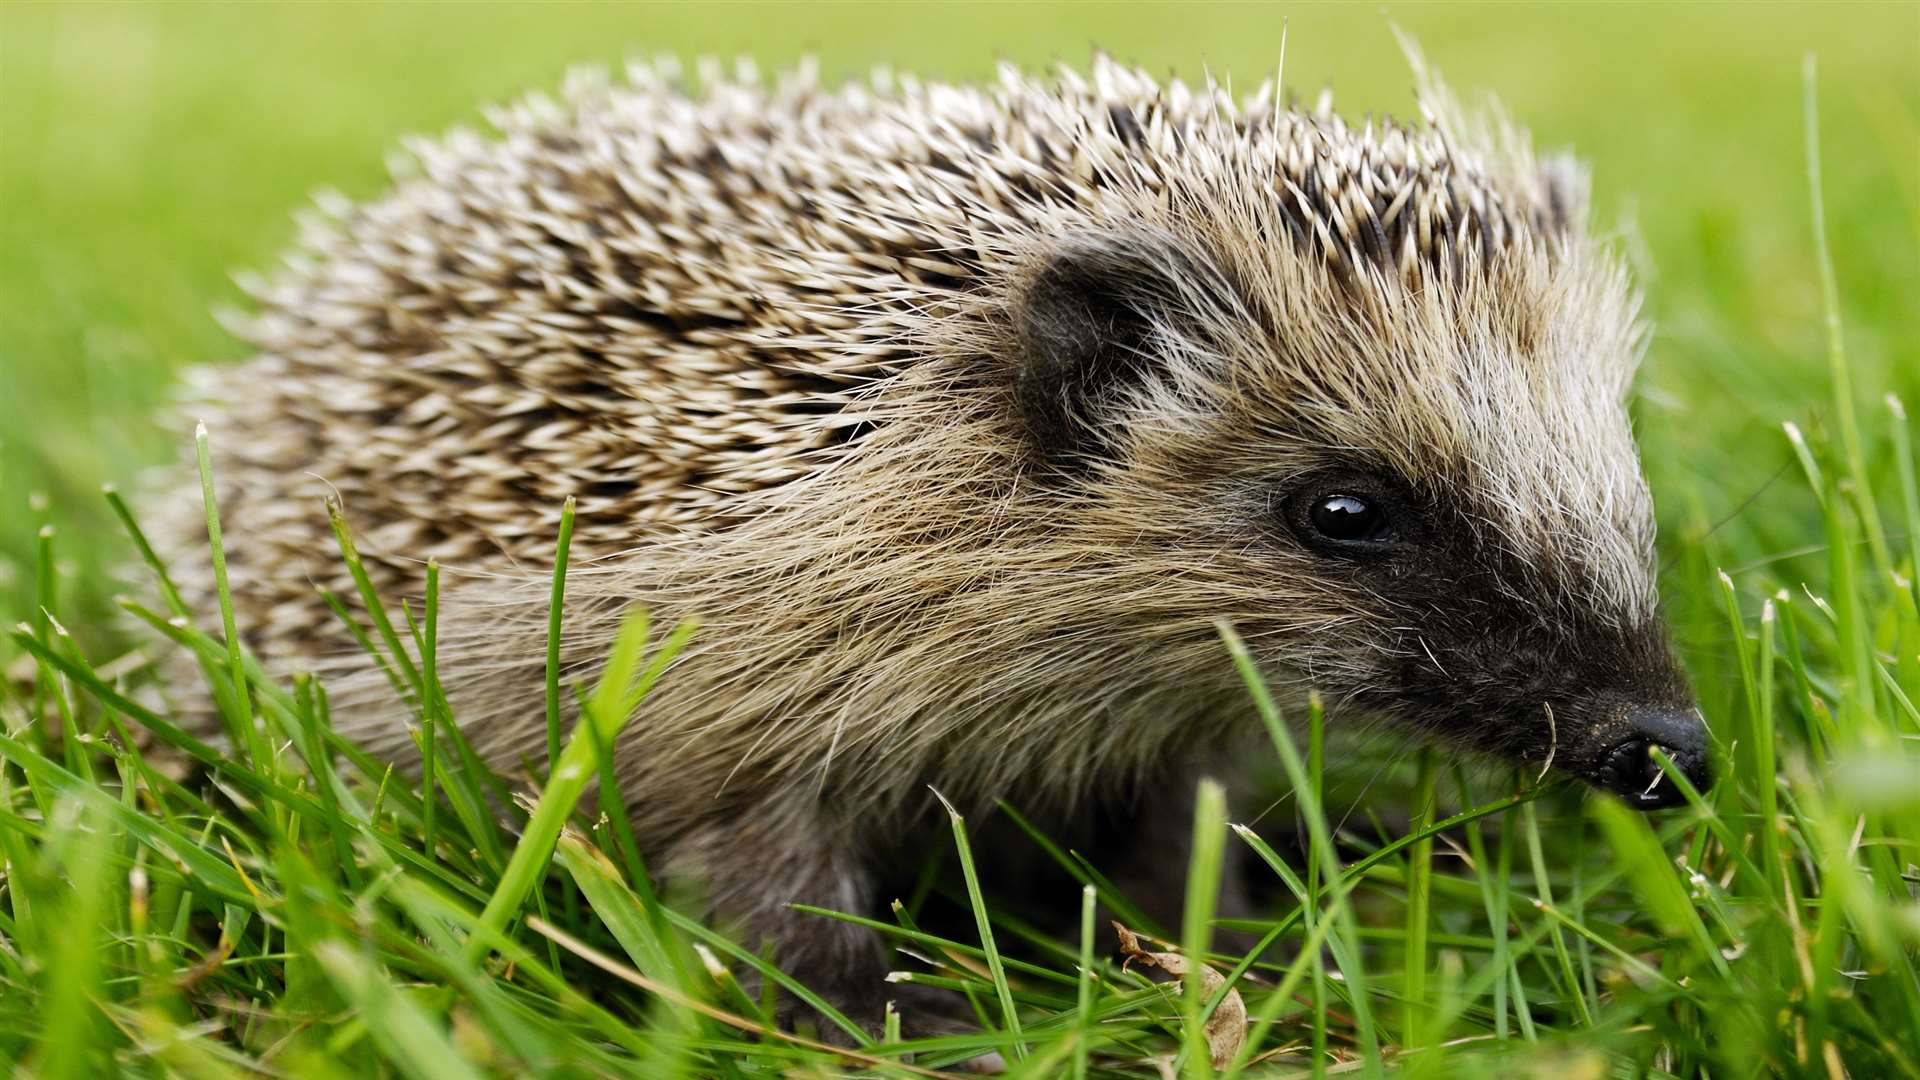 Kent has seen a decline in the number of hedgehogs